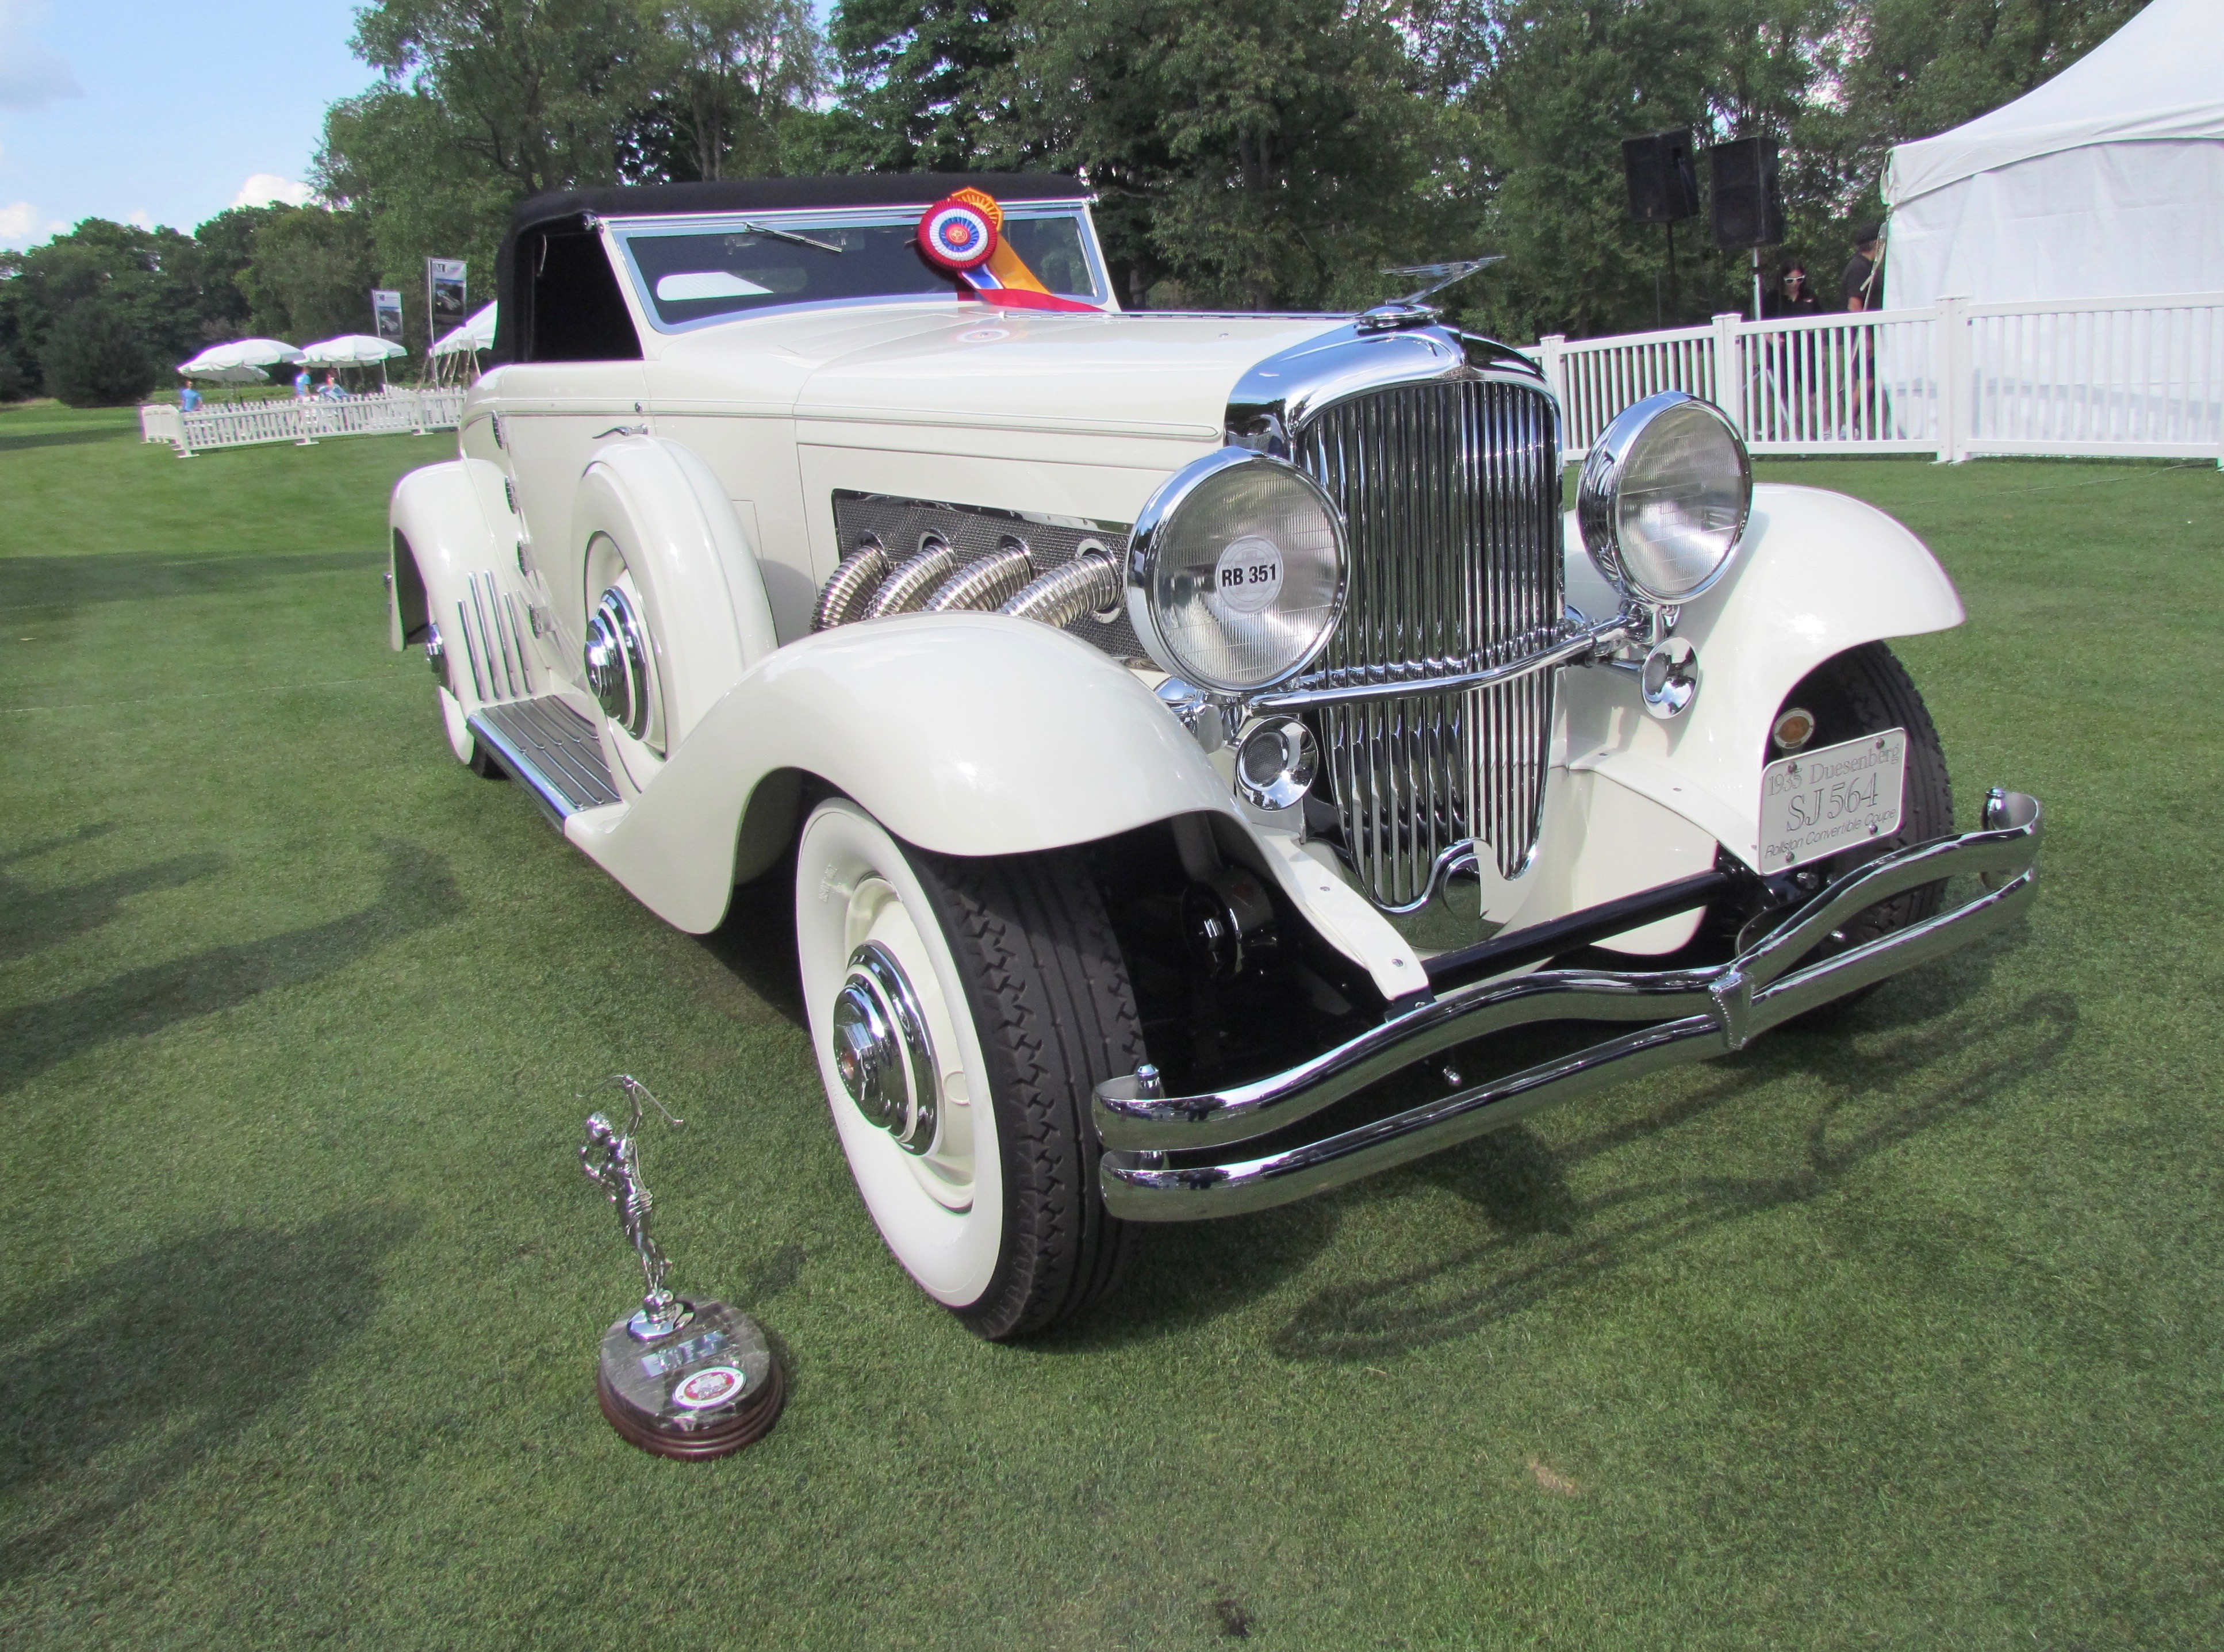 Detroit concours, '35 Duesenberg, '37 Bugatti take honors at Concours of America, ClassicCars.com Journal